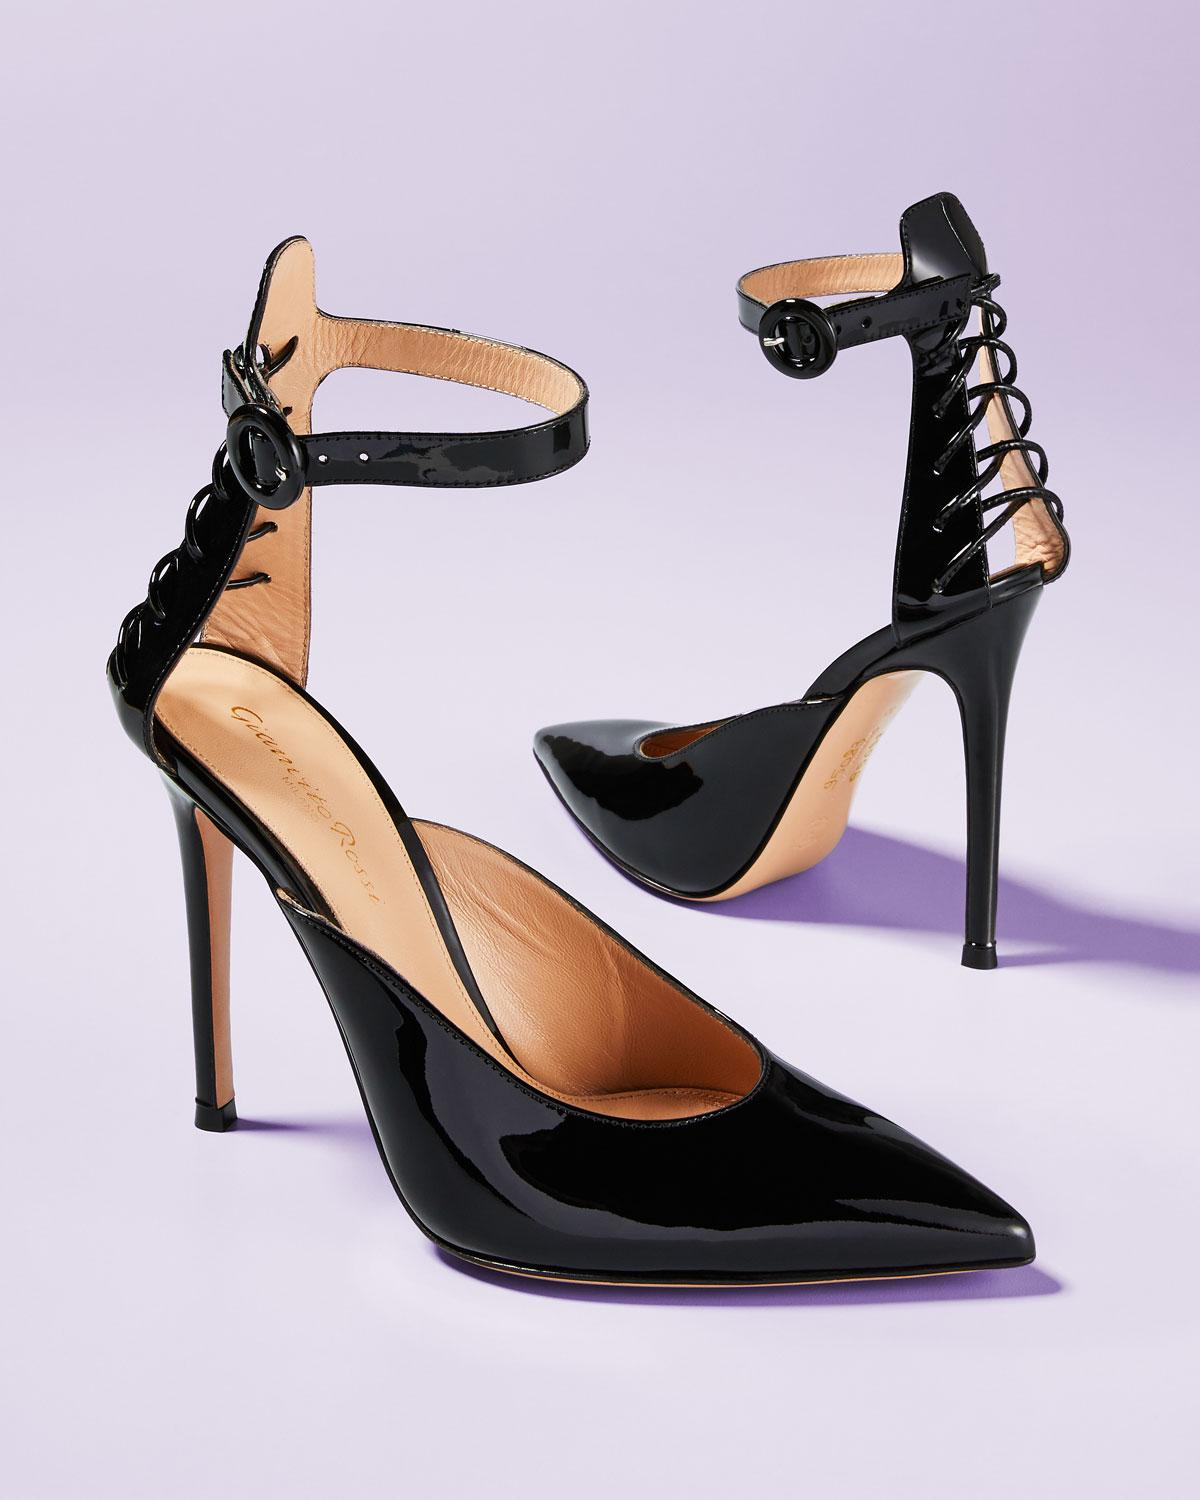 421dad458e1 Lyst - Gianvito Rossi Patent Leather Ankle-strap Pumps in Black - Save 55%